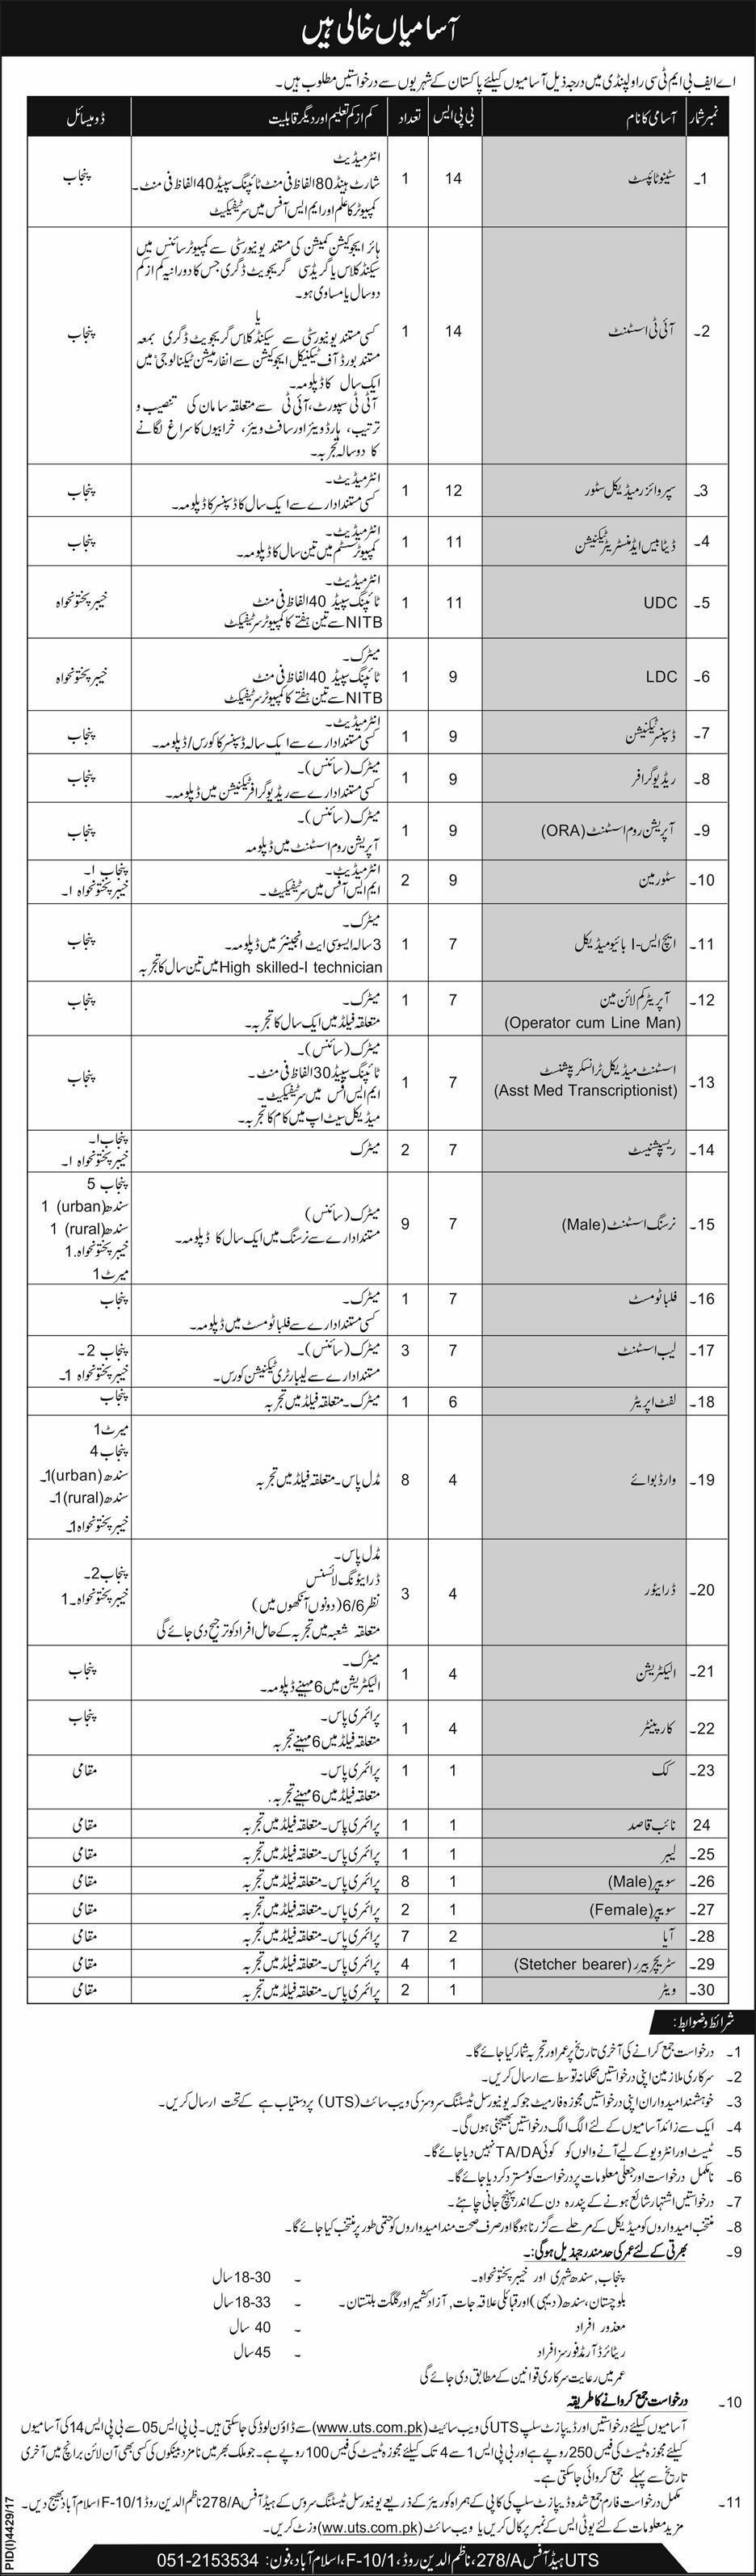 Armed Forces Bone Marrow Transplant Center 69 Jobs, 18th February 2018, Daily Express Newspaper